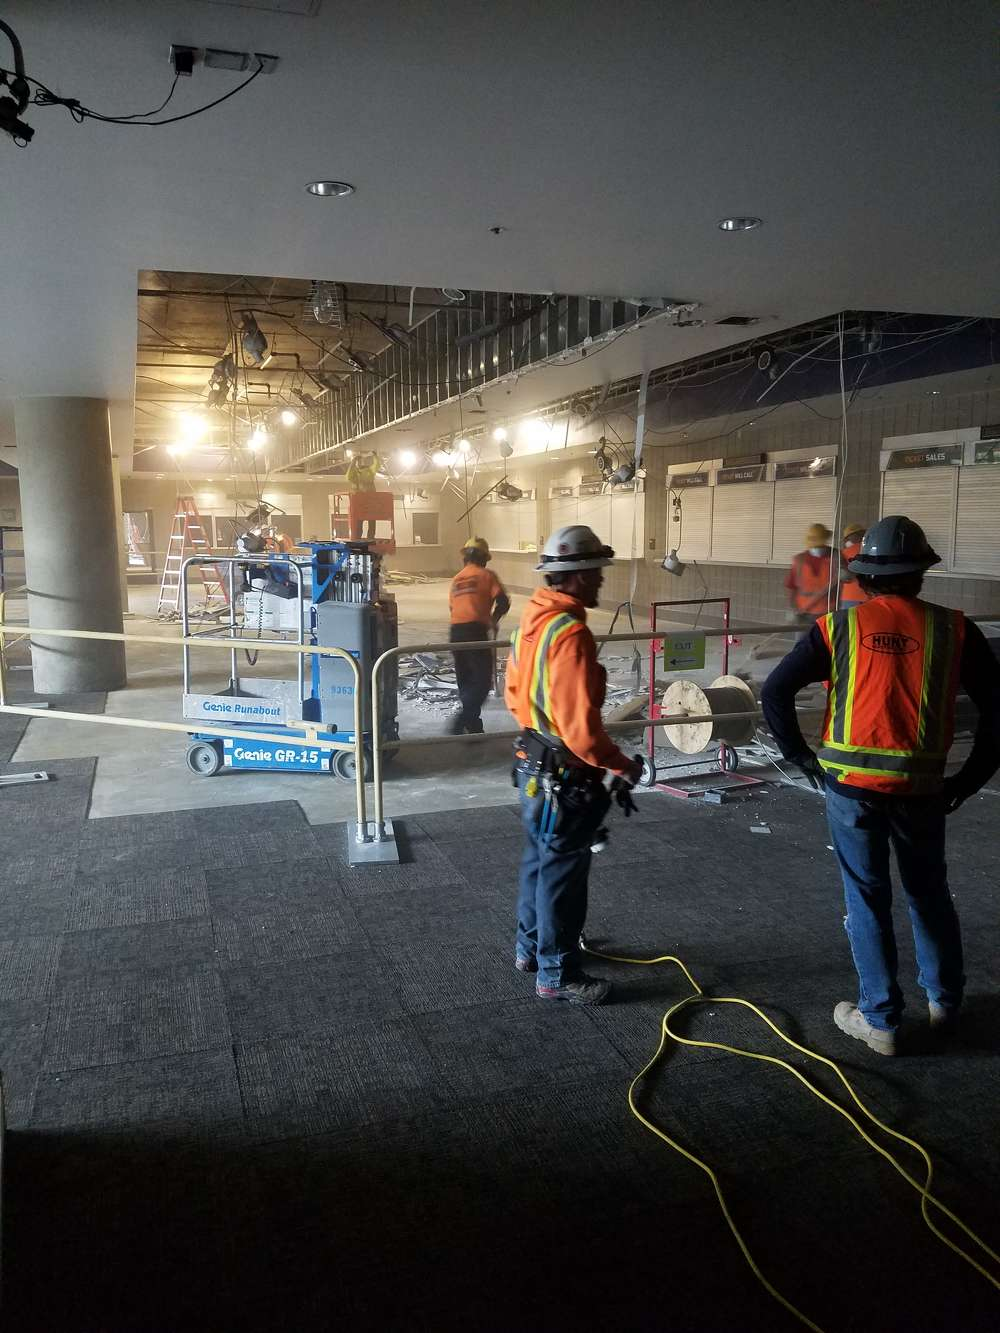 Most of the construction work is interior demolition and interior renovation.